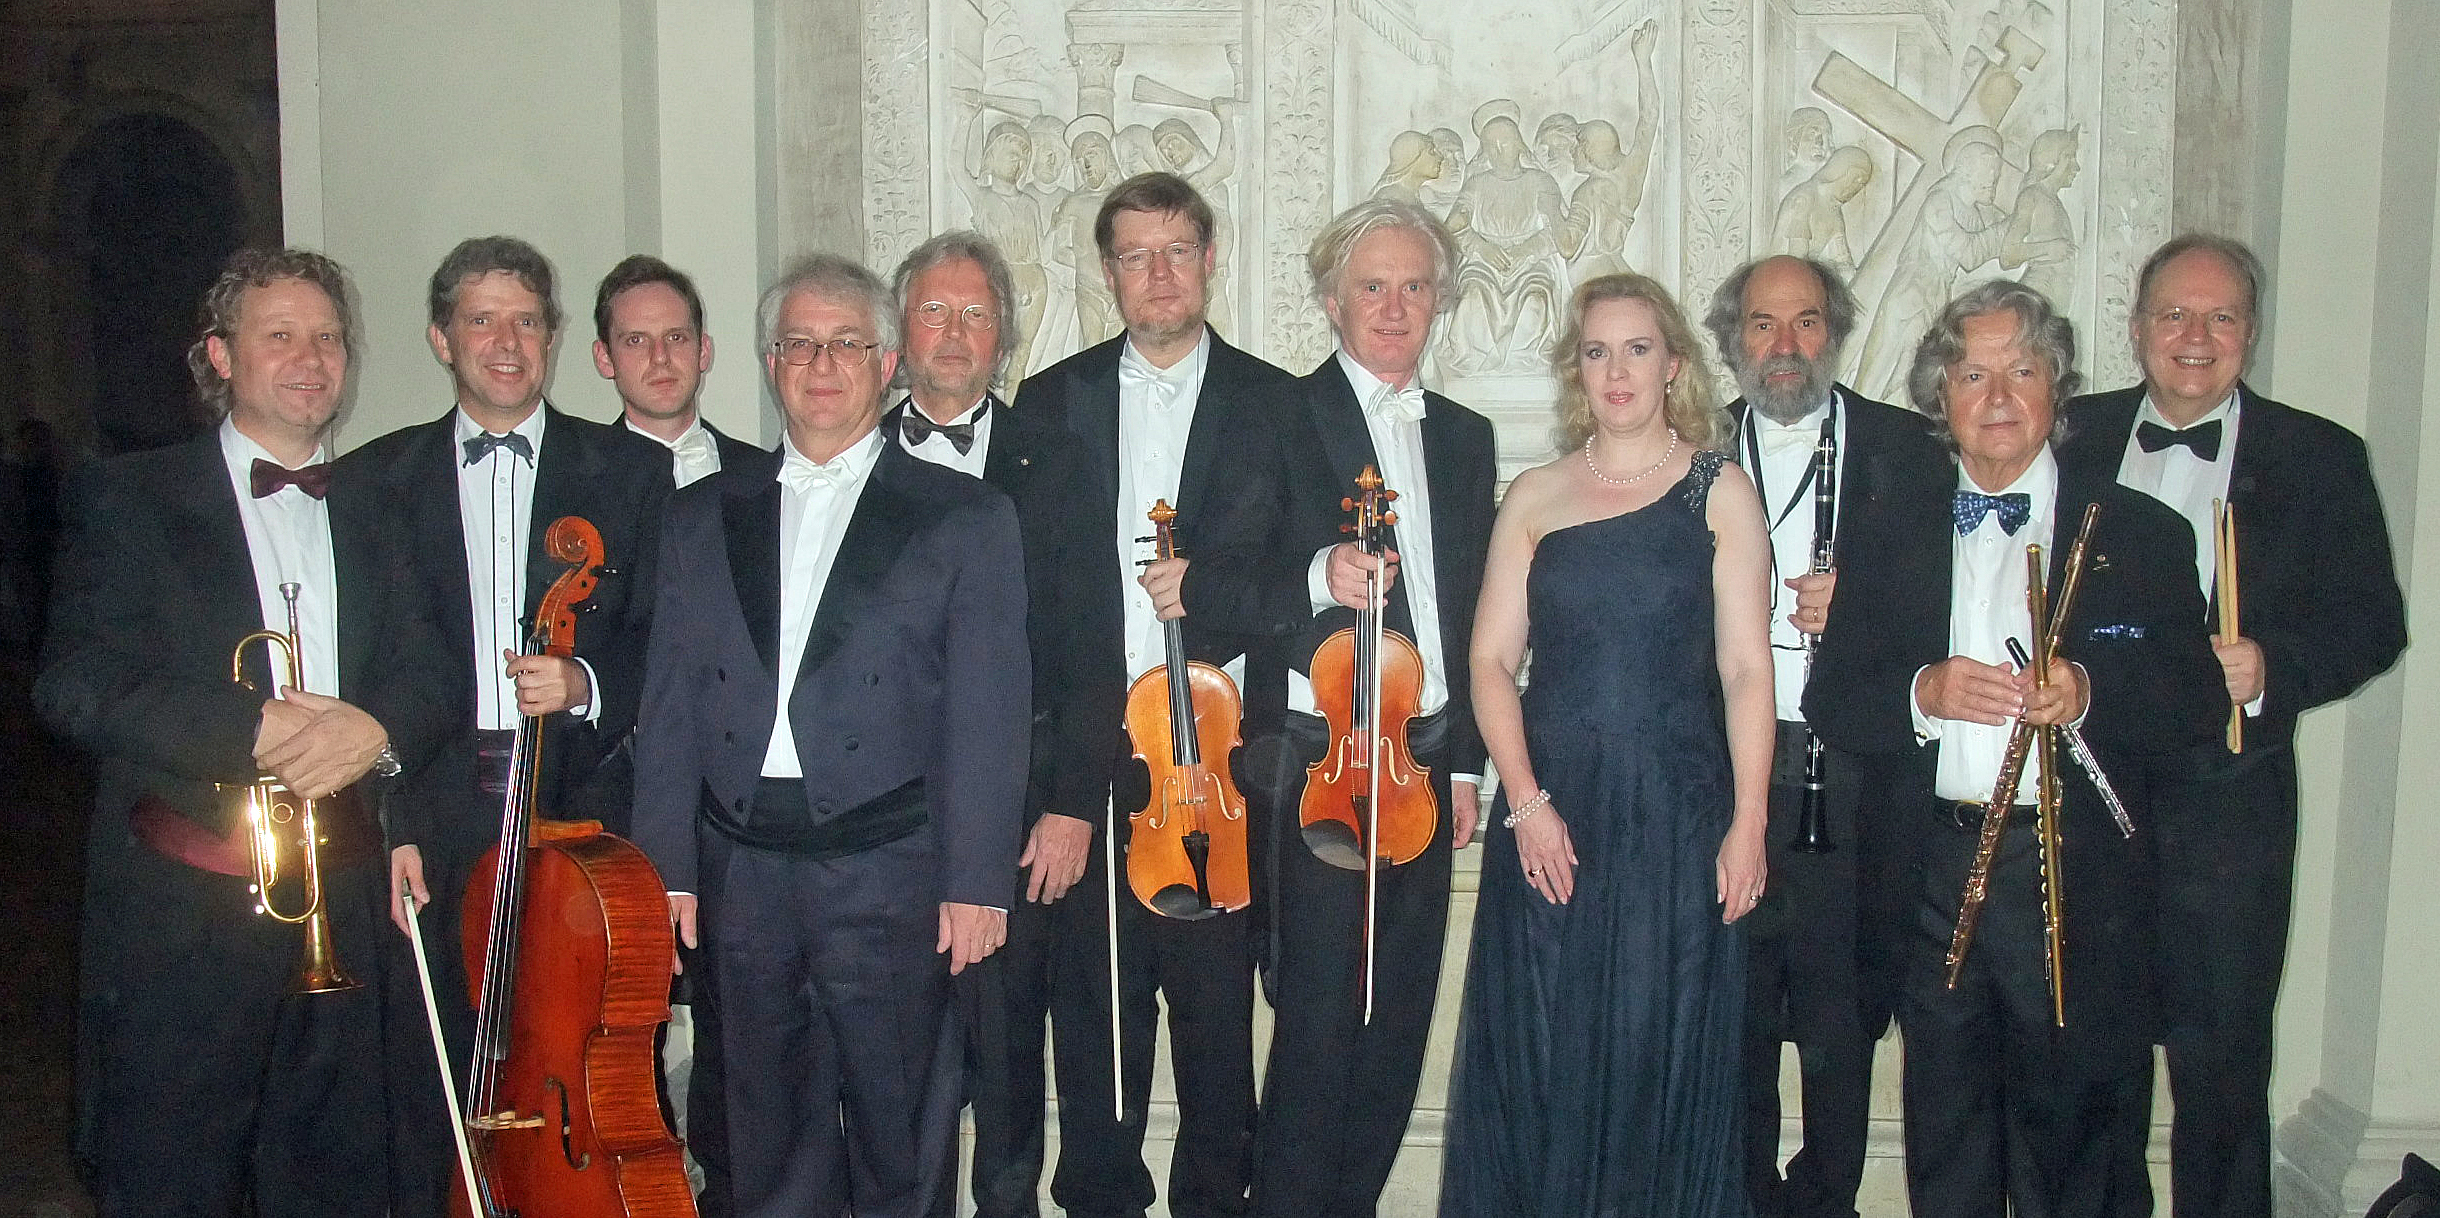 Morning Concert by the St. Moritz Salon Orchestra